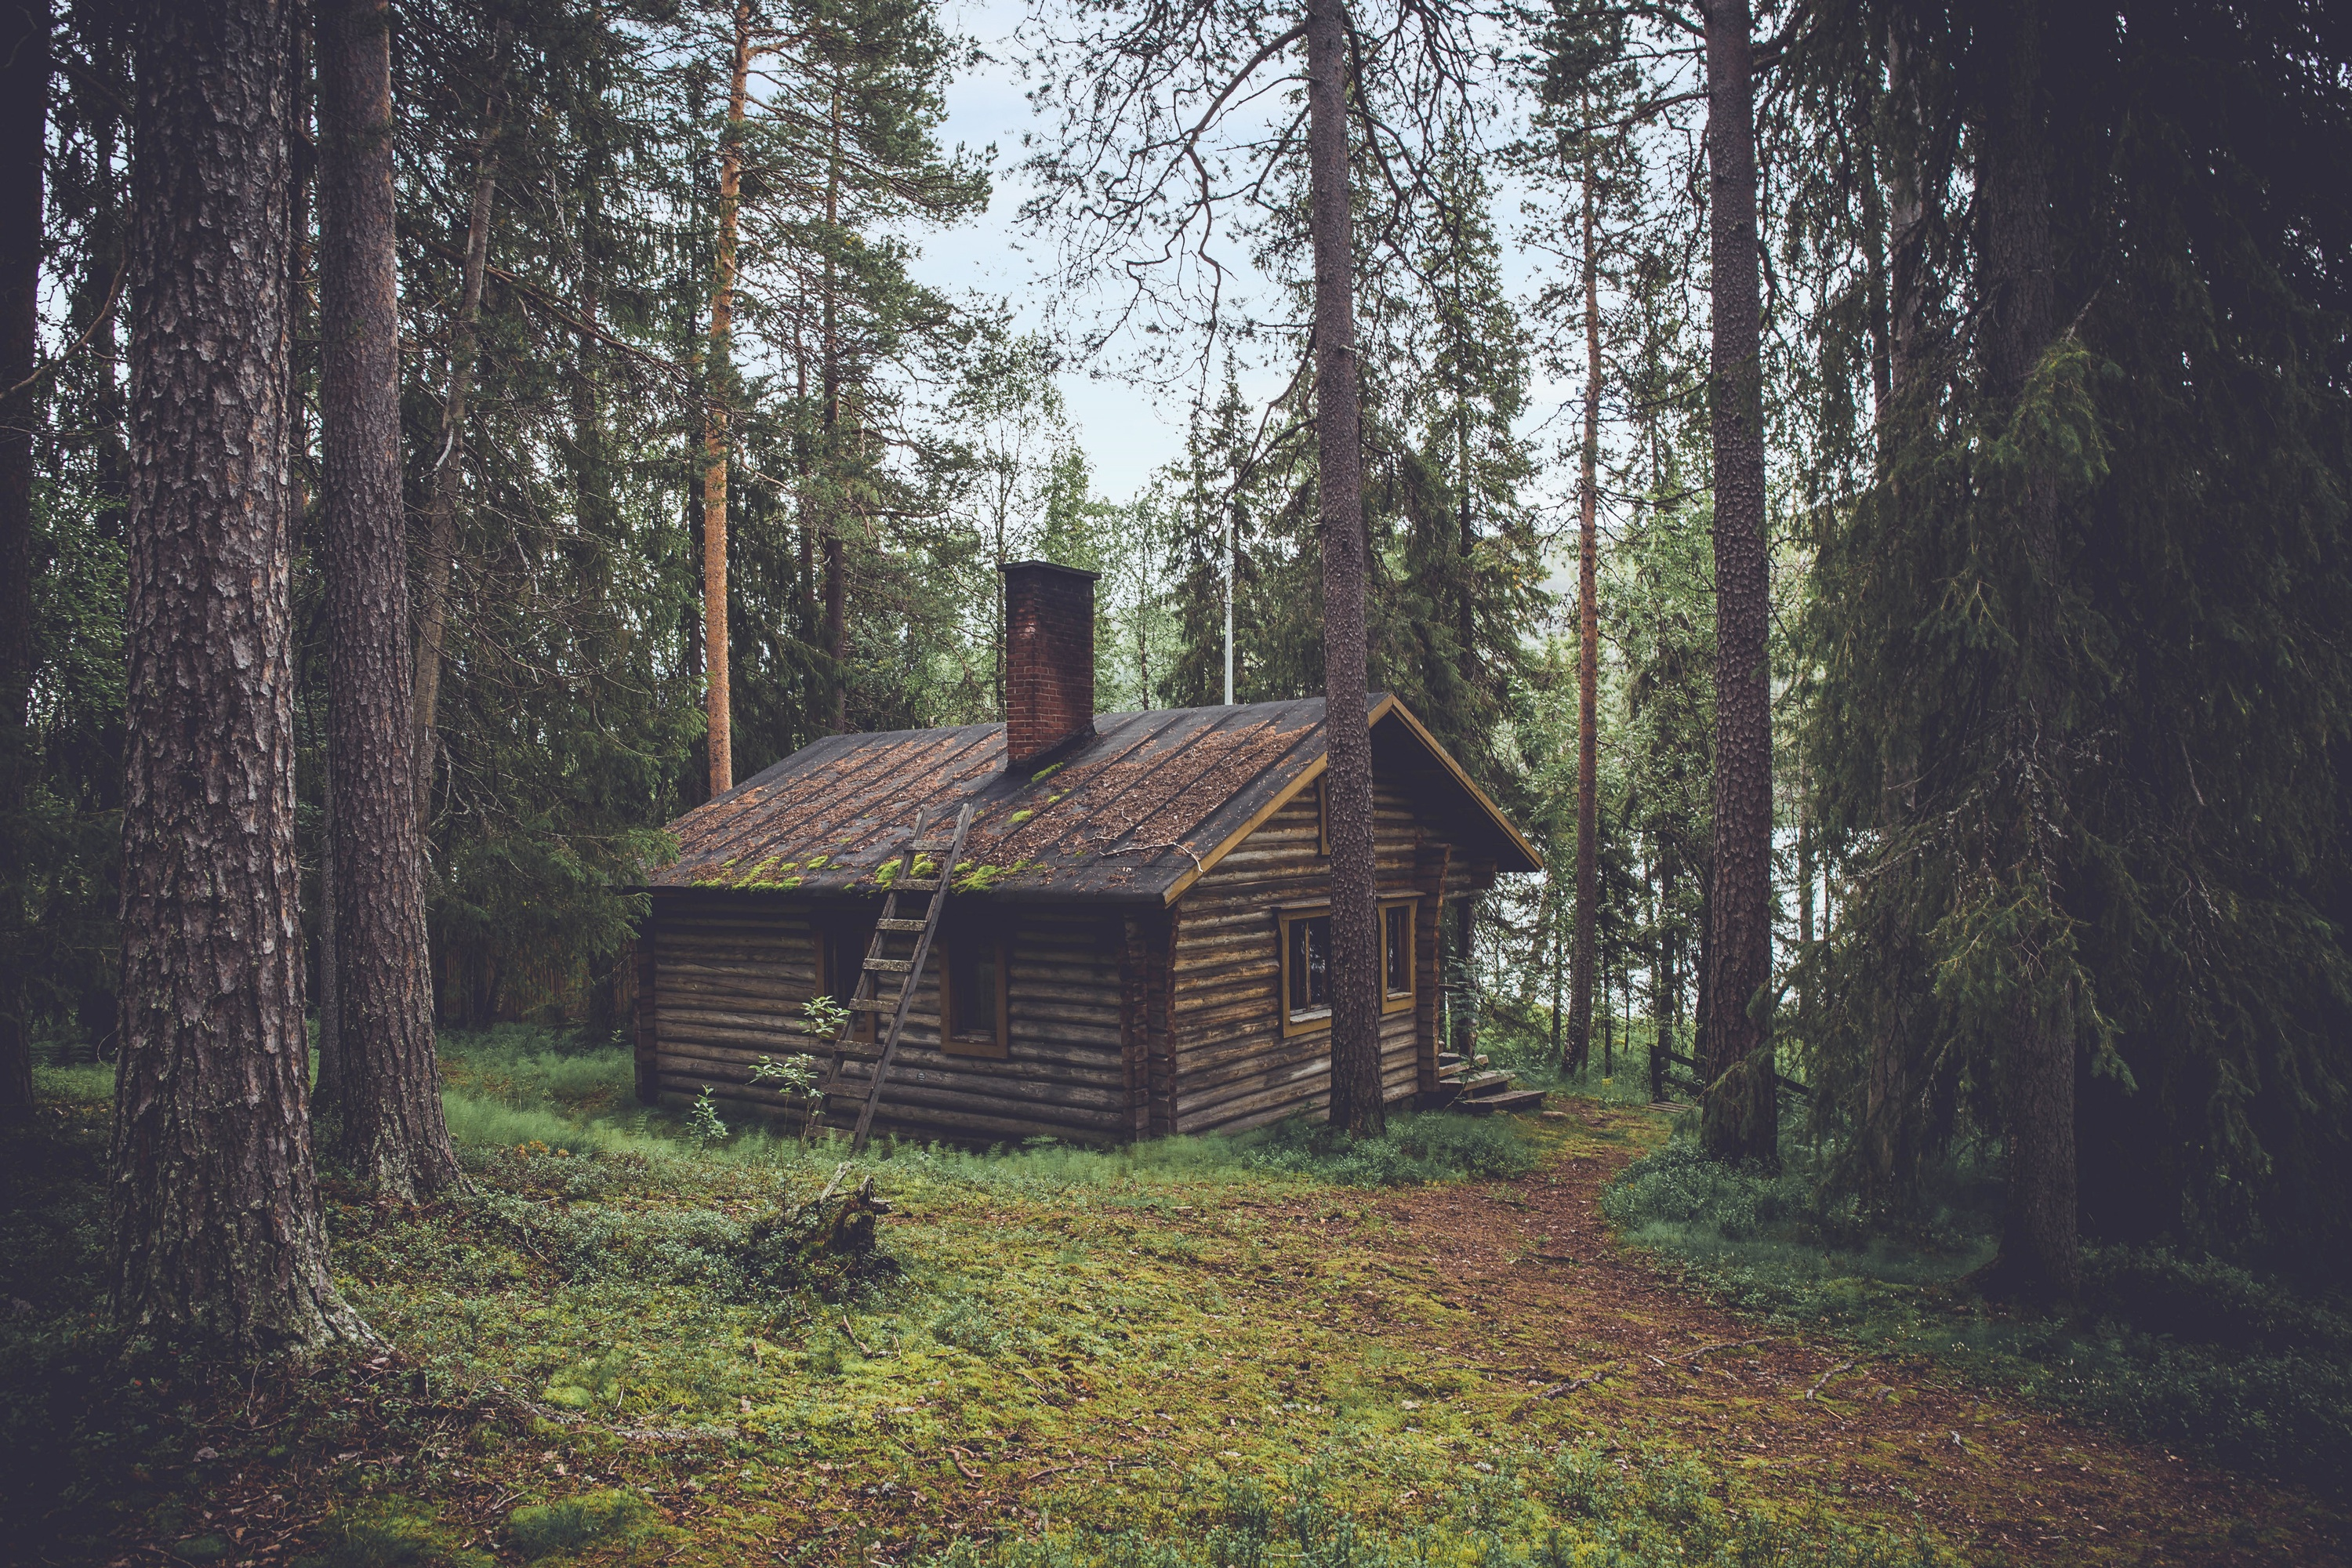 Wooden House, Fire, Forest, Home, House, HQ Photo